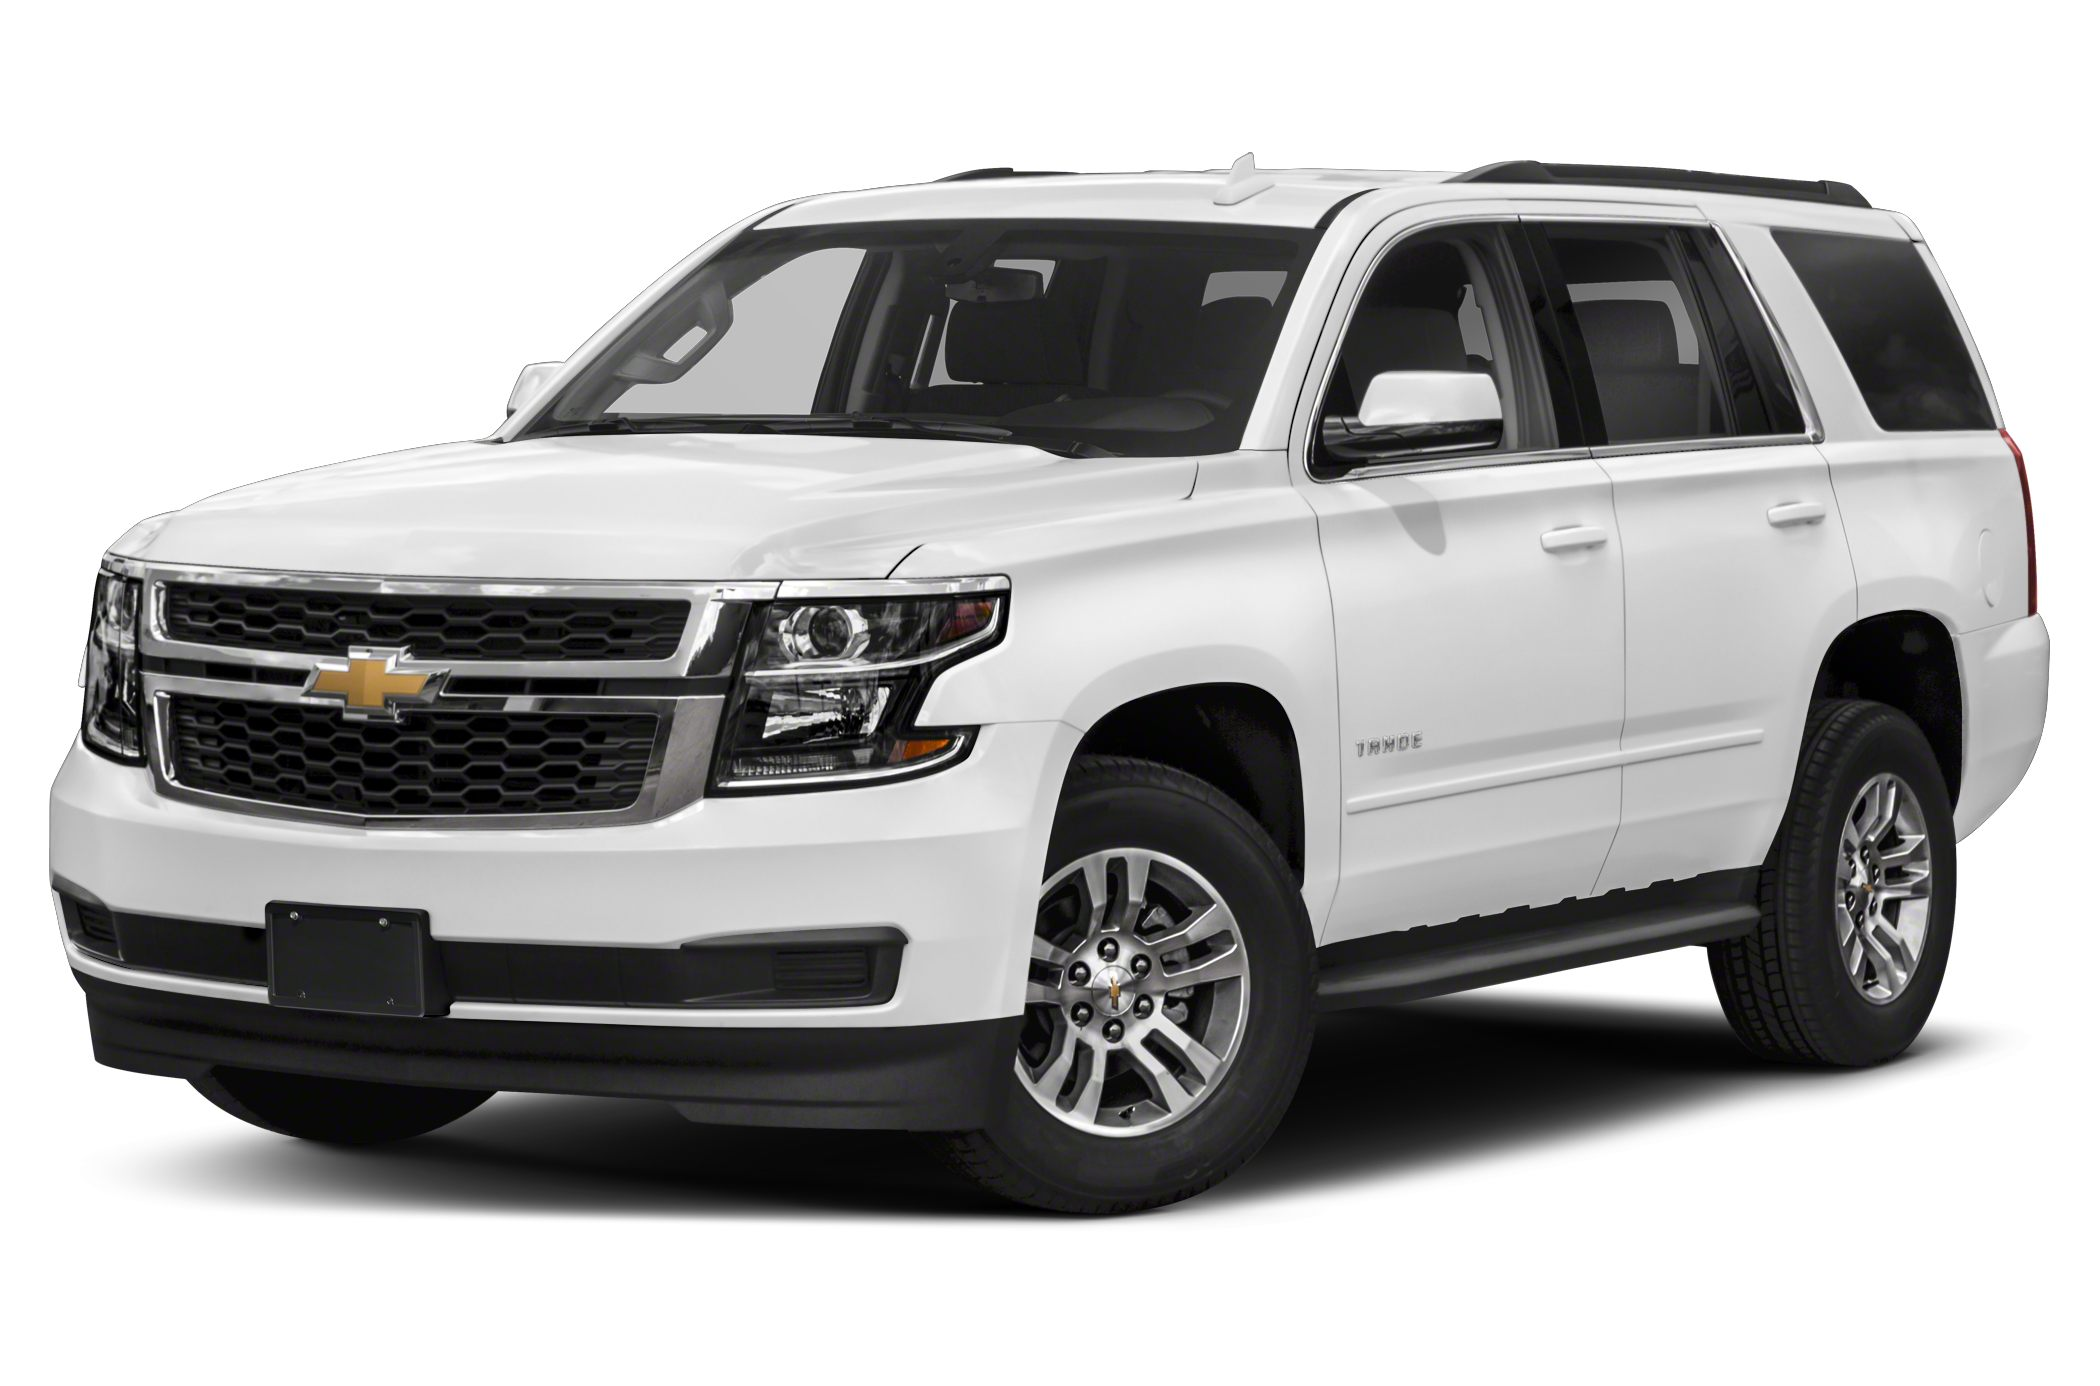 2018 Chevrolet Tahoe Deals, Prices, Incentives & Leases, Overview - CarsDirect